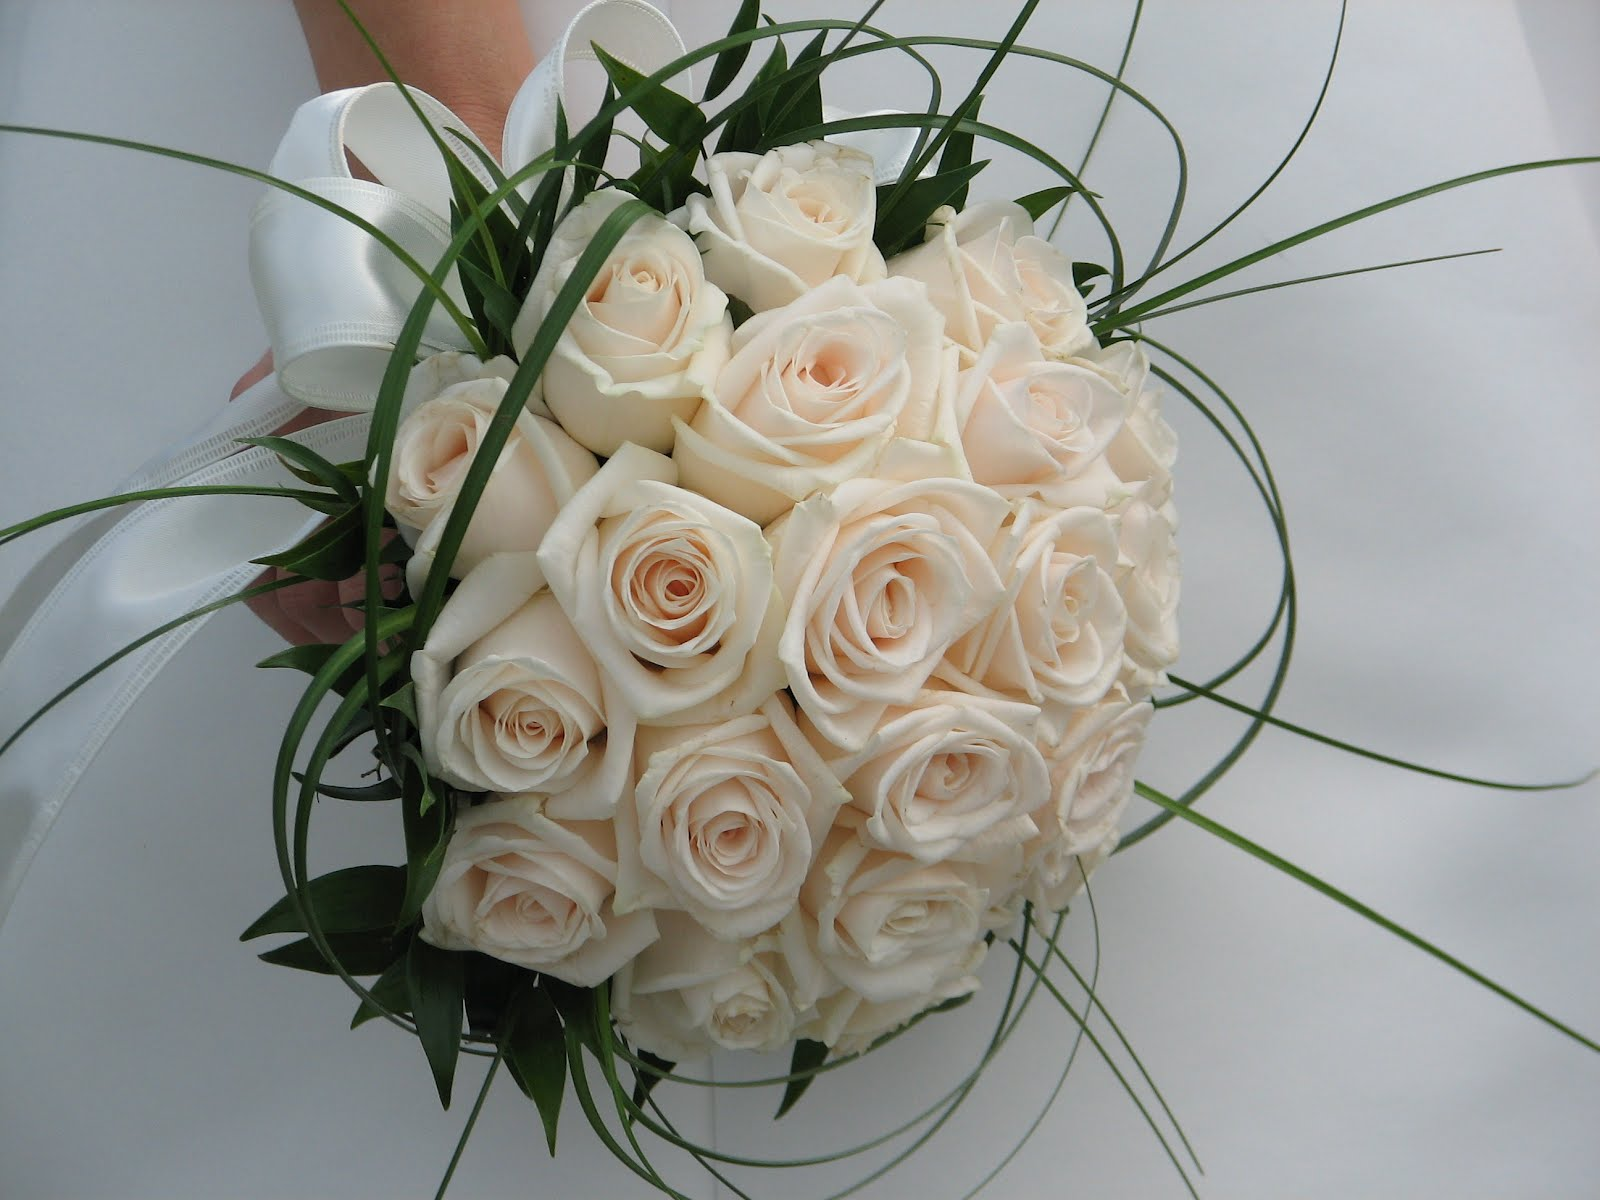 Wedding Flowers Bouquet and Arrangements Wedding Guidelines